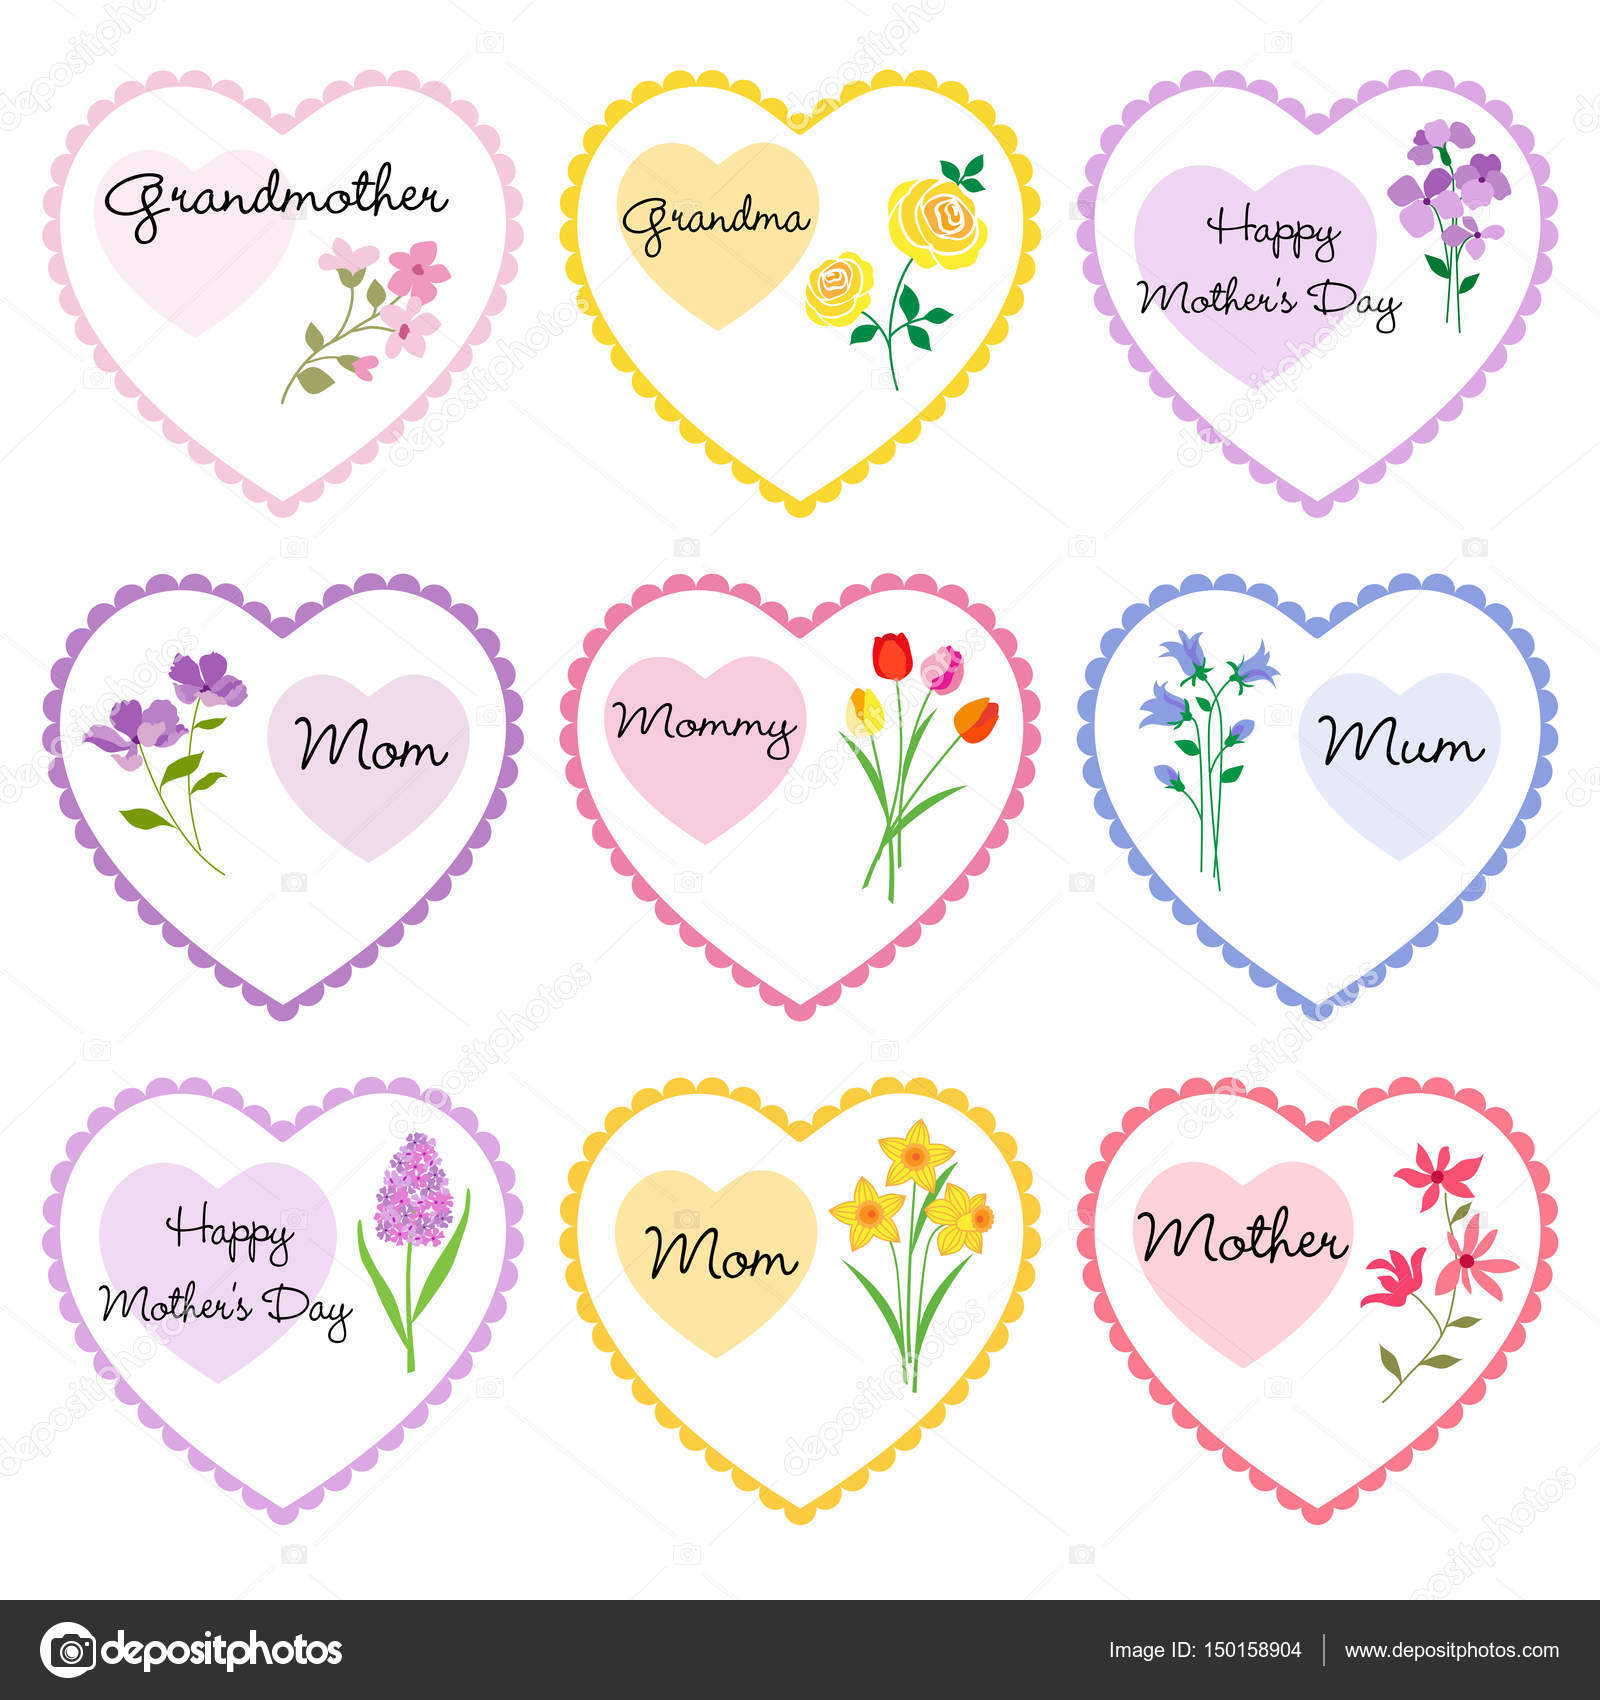 Mothers day heart frames — Stock Vector © scrapster #150158904